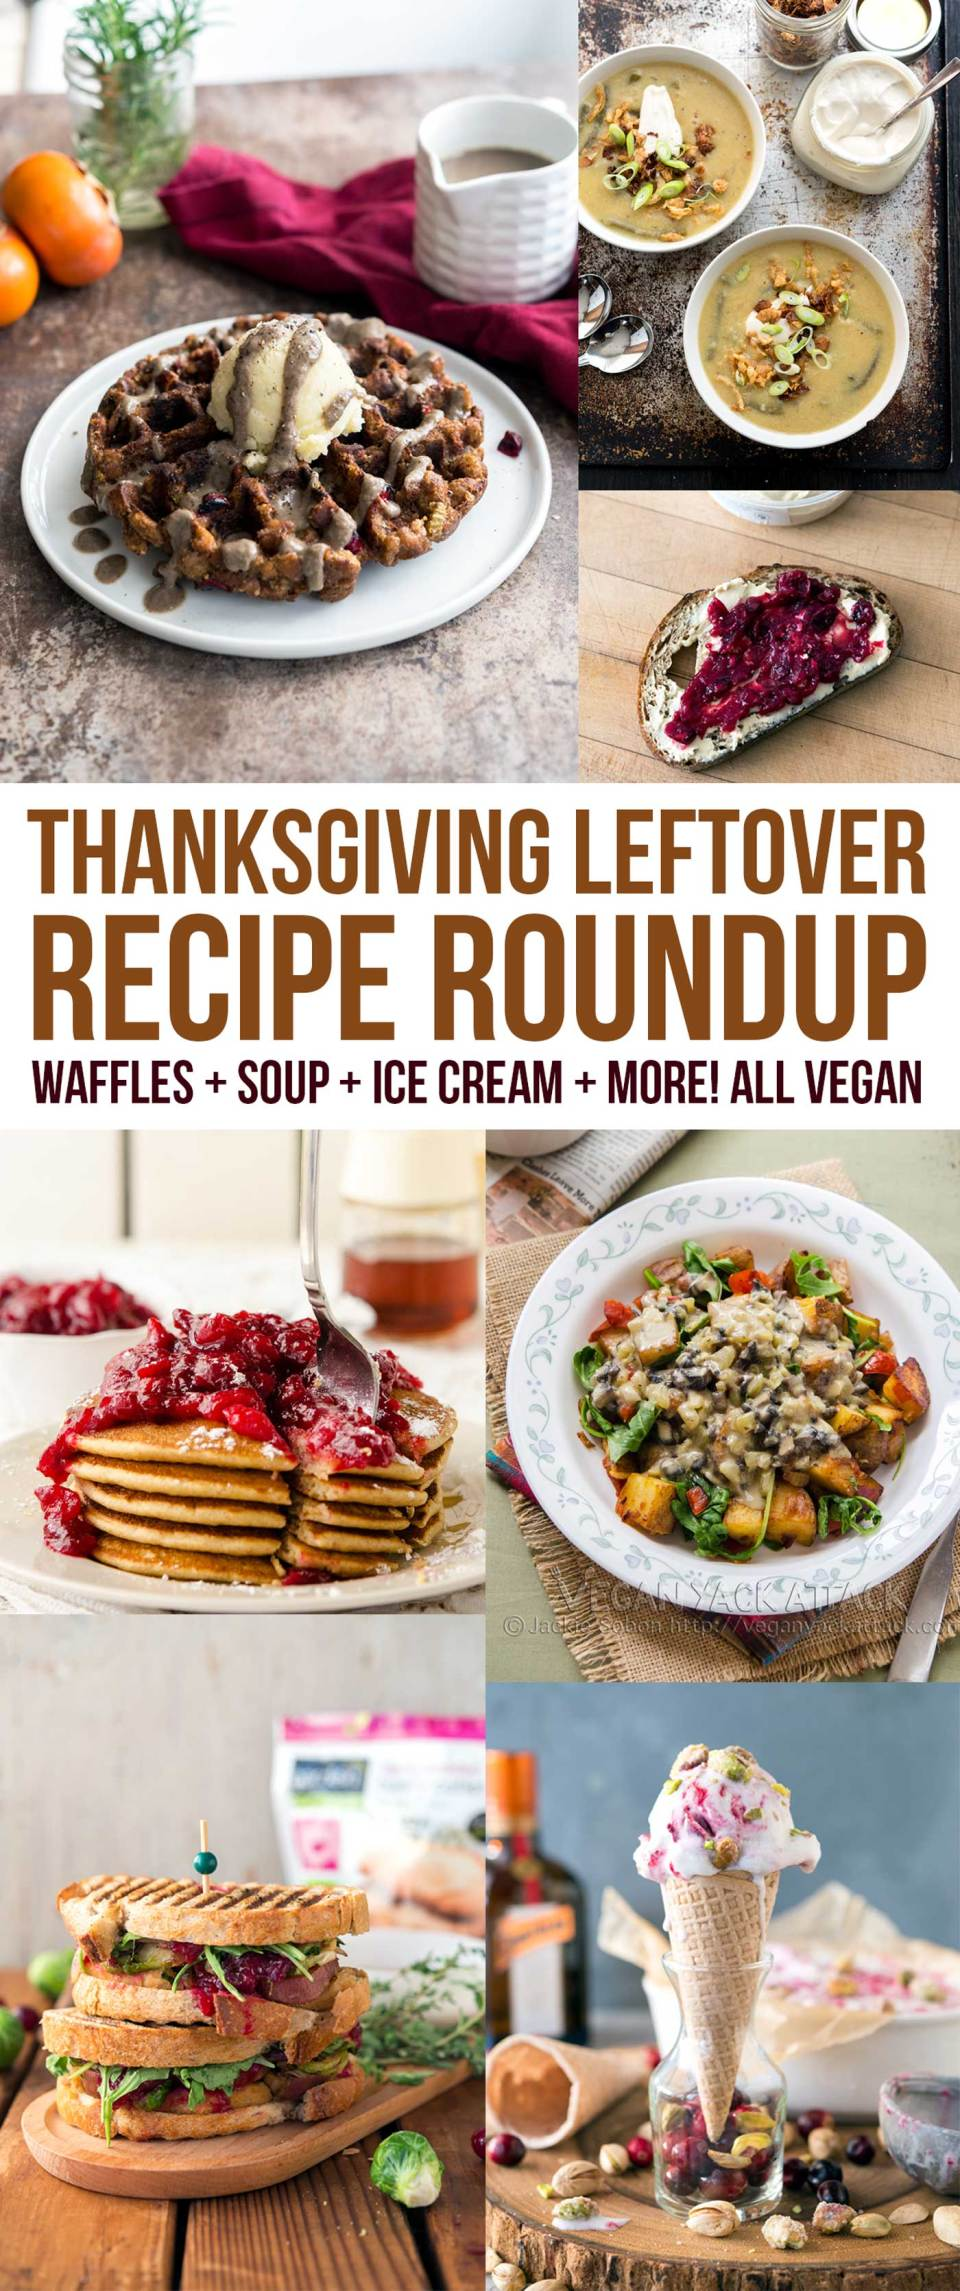 Looking for Thanksgiving Leftover Recipe Ideas? I've got you covered with these delicious dishes ranging from simple to fully-transformed! #Vegan